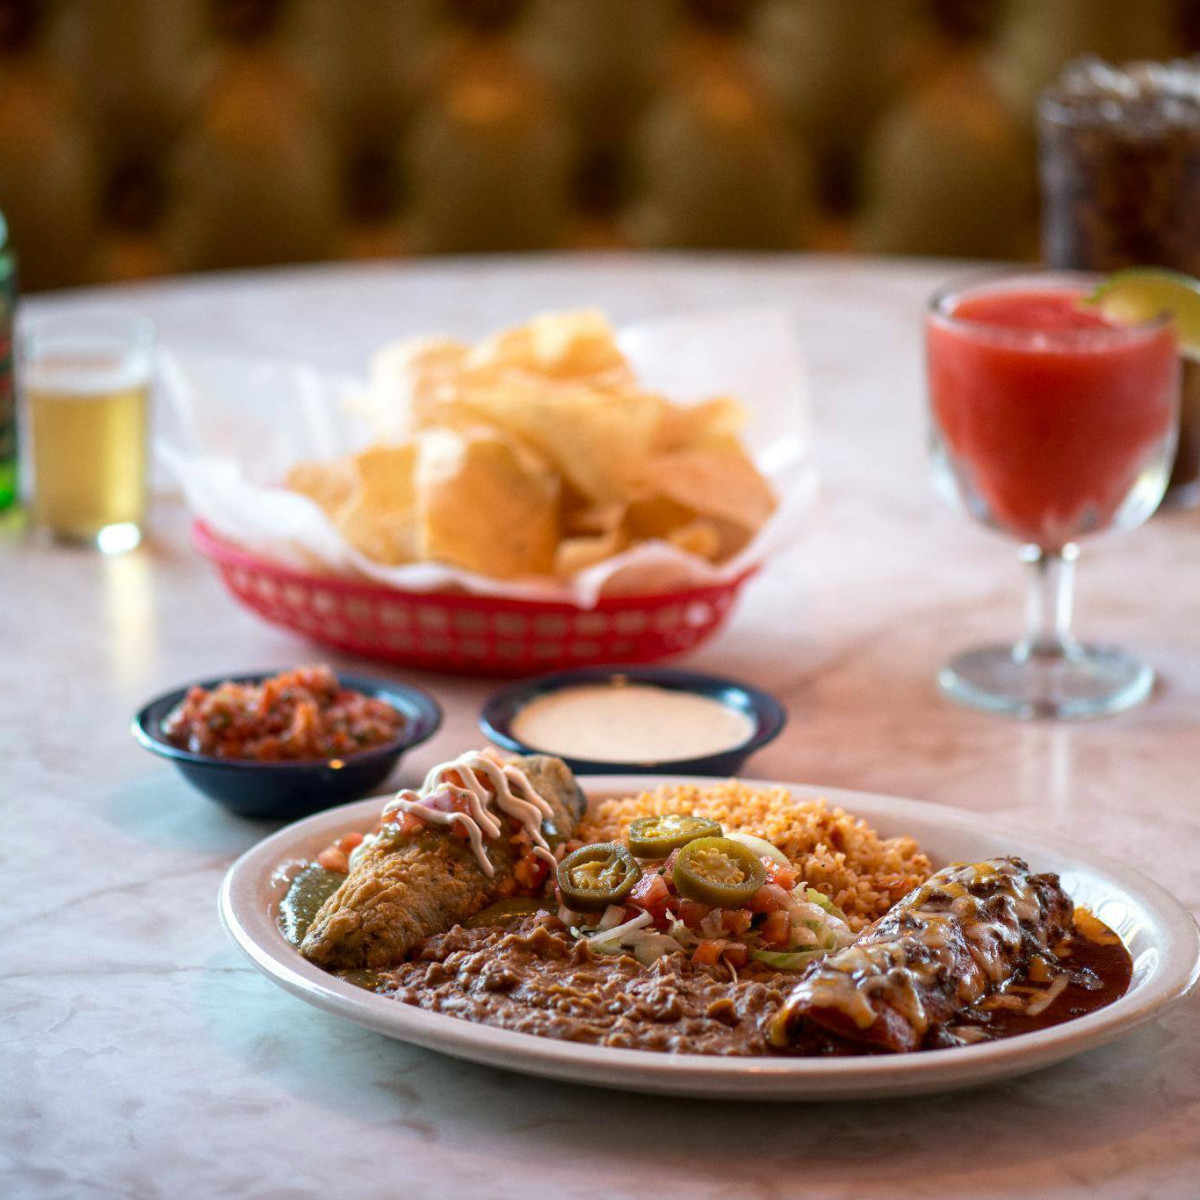 Tex-Mex combo plate at Chuy's in Dallas